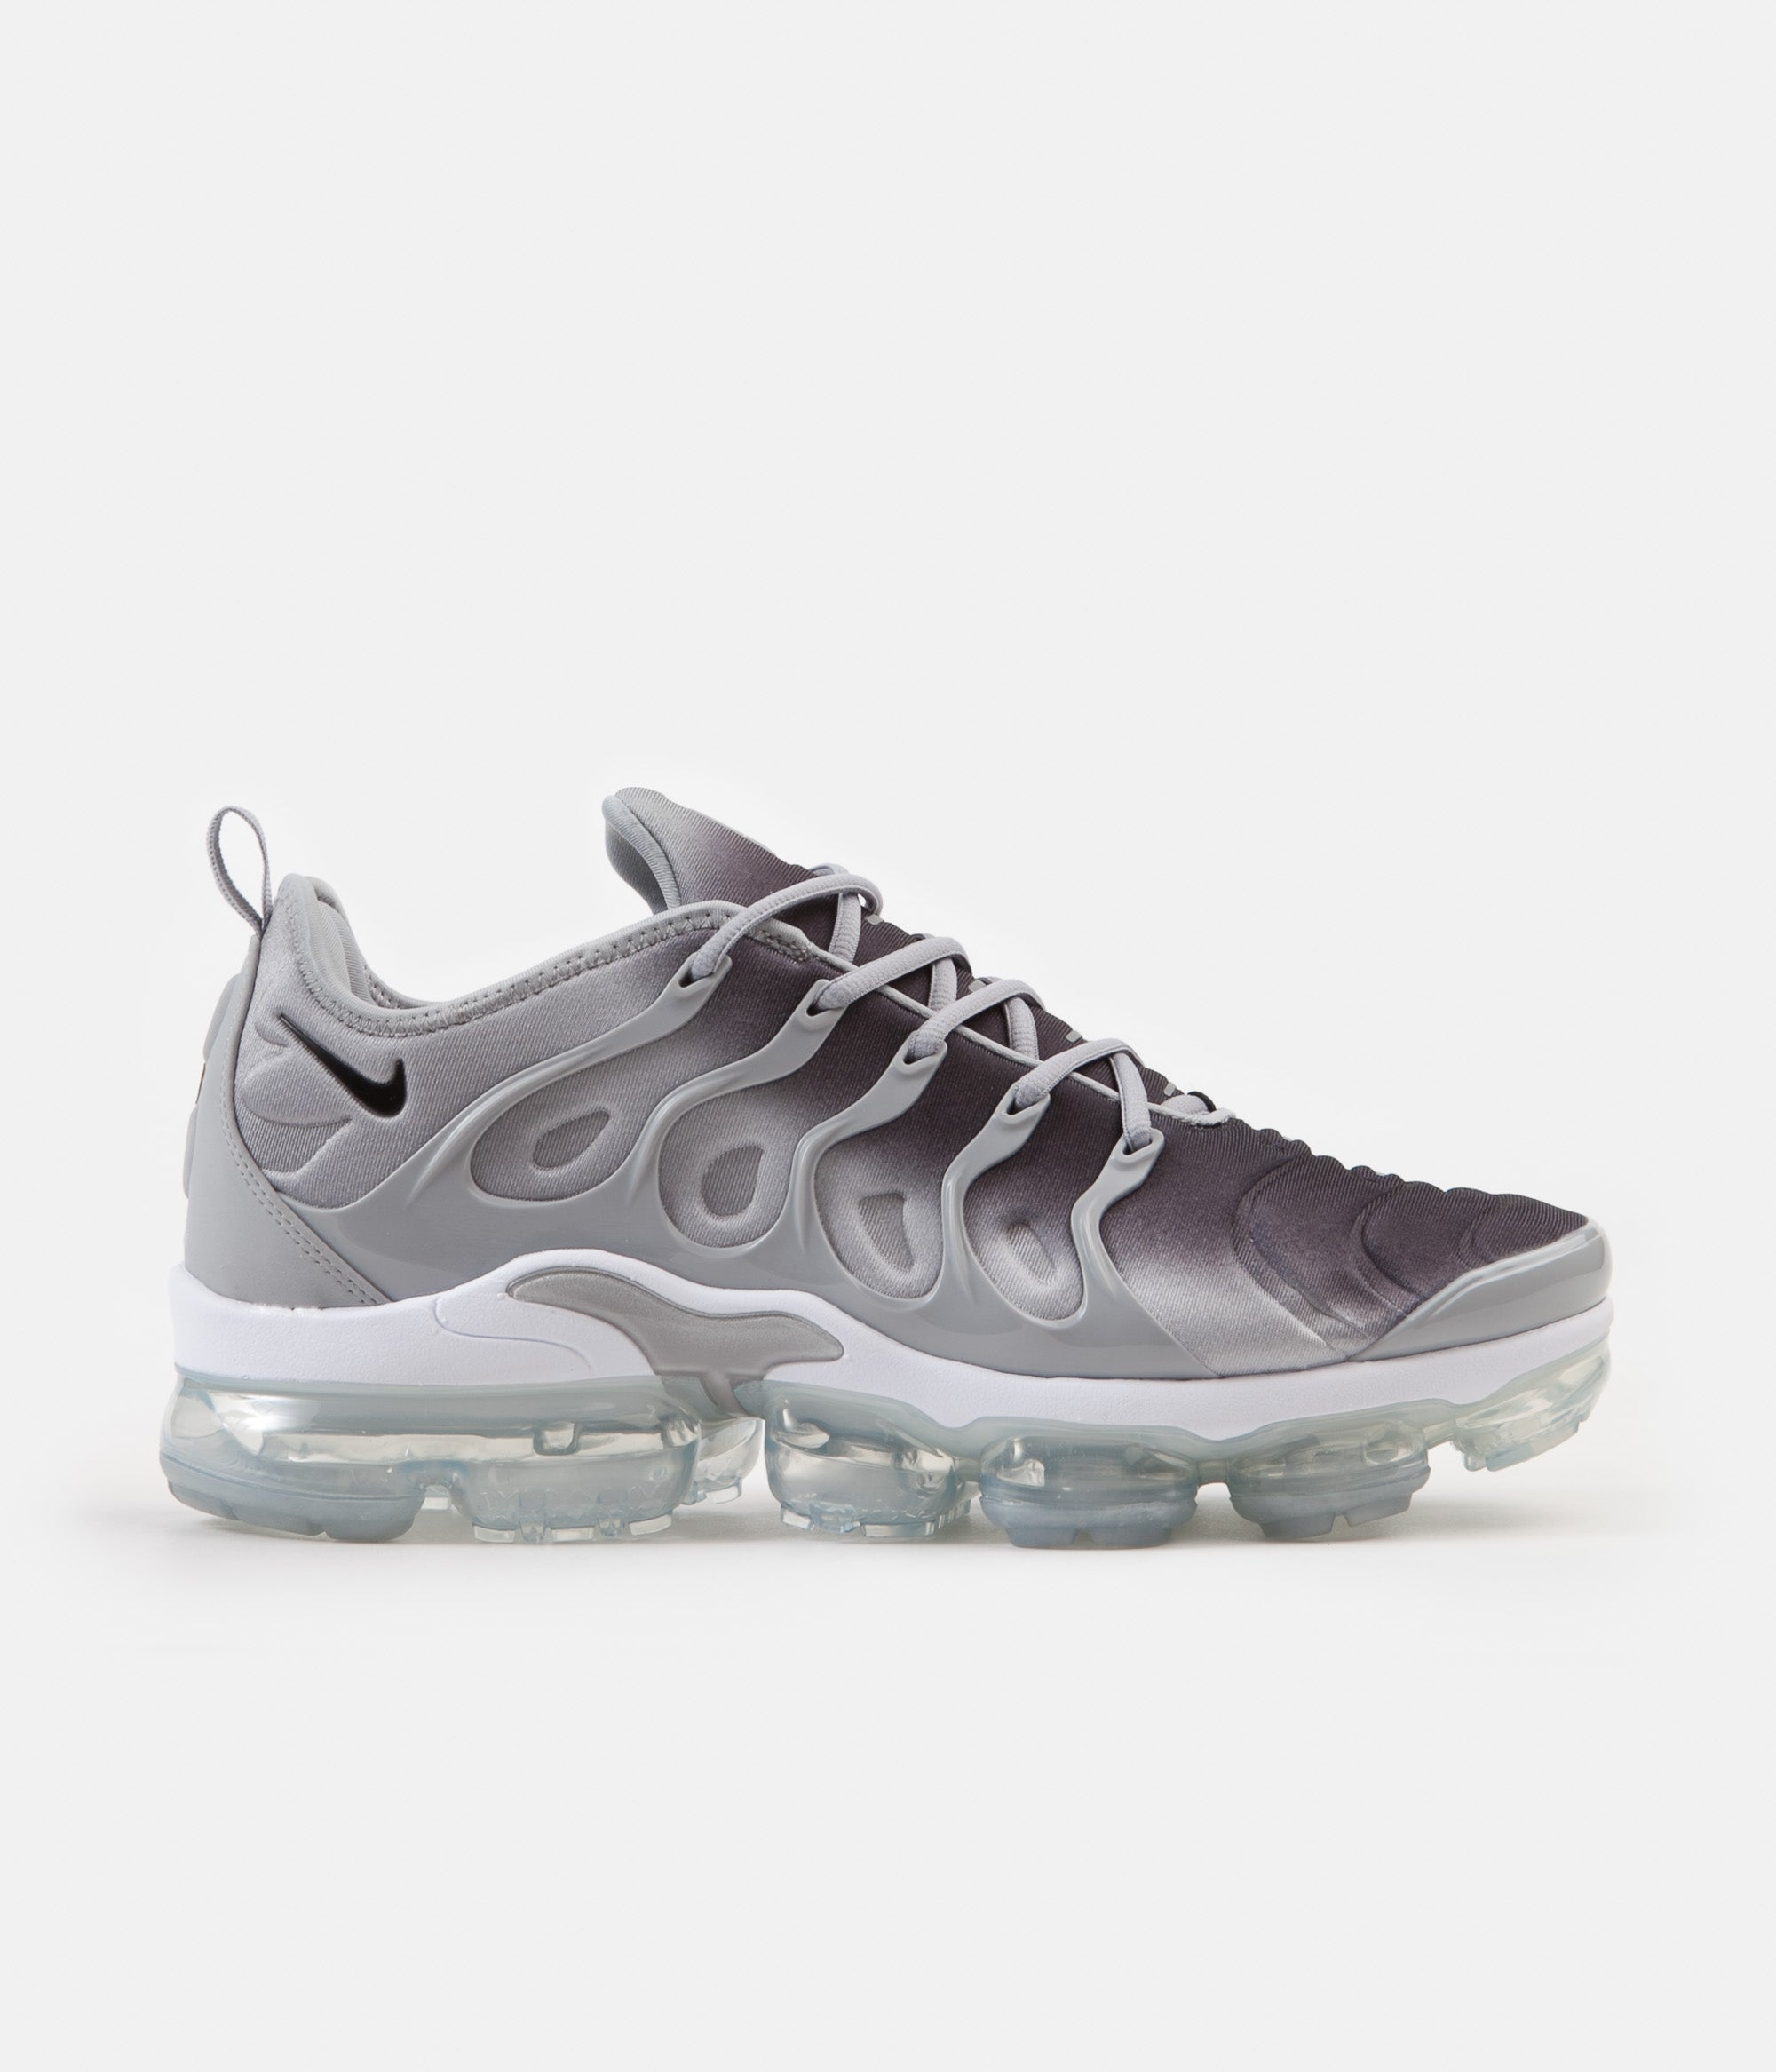 859c88855b833 ... Nike Air VaporMax Plus Shoes - Wolf Grey   Black - White ...